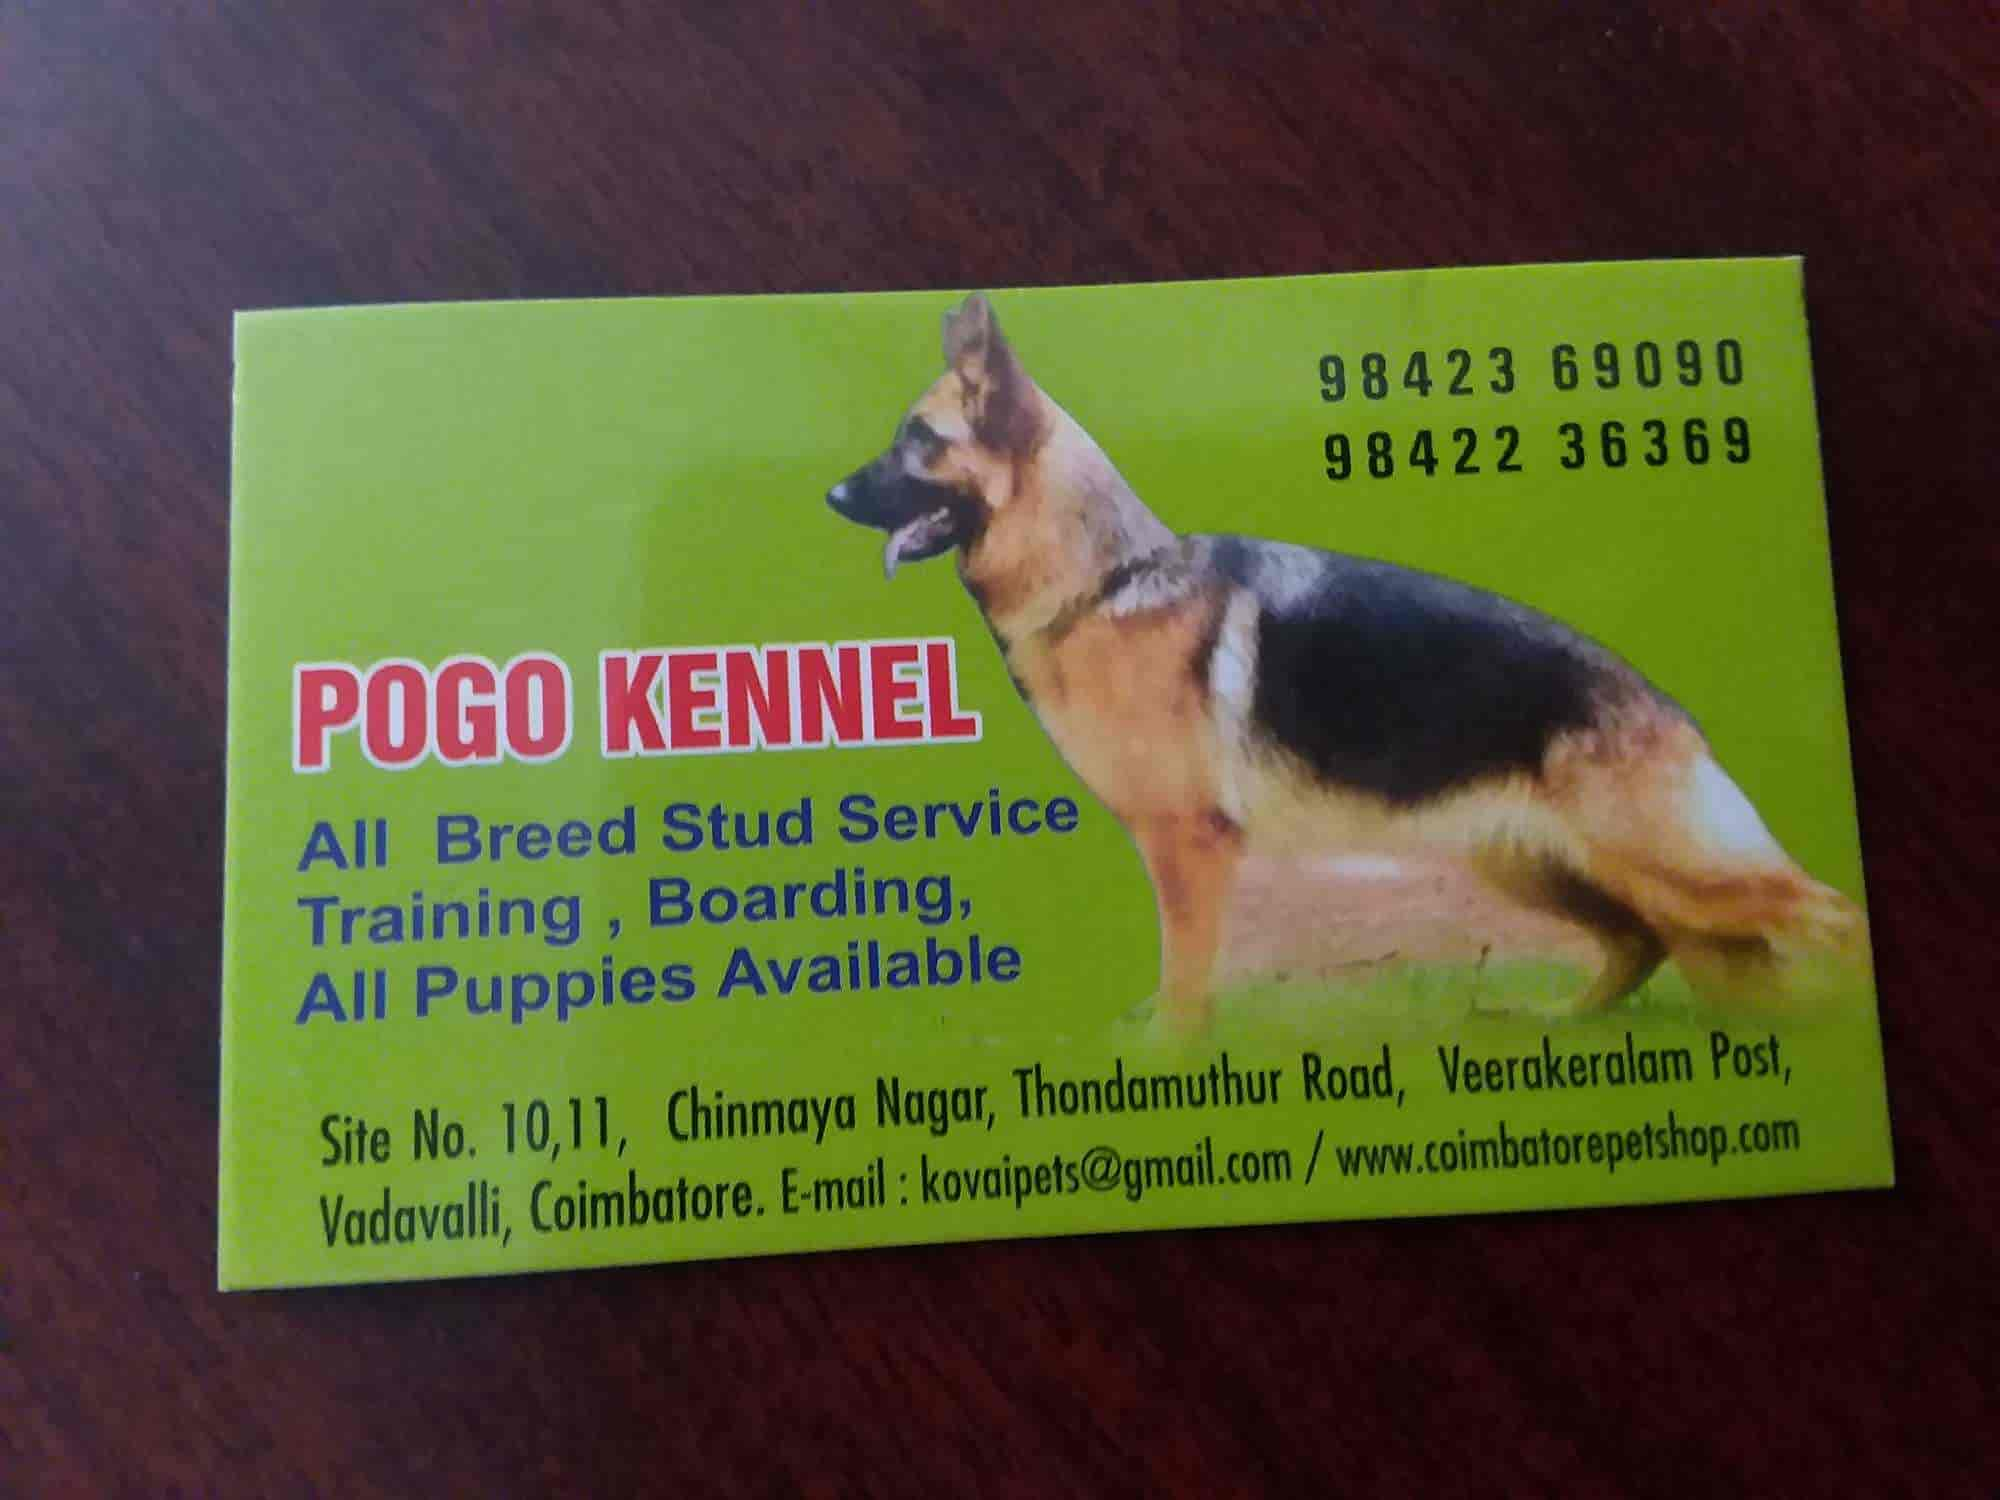 New Kovai Pets - Pet Shops For Dog - Book Appointment Online